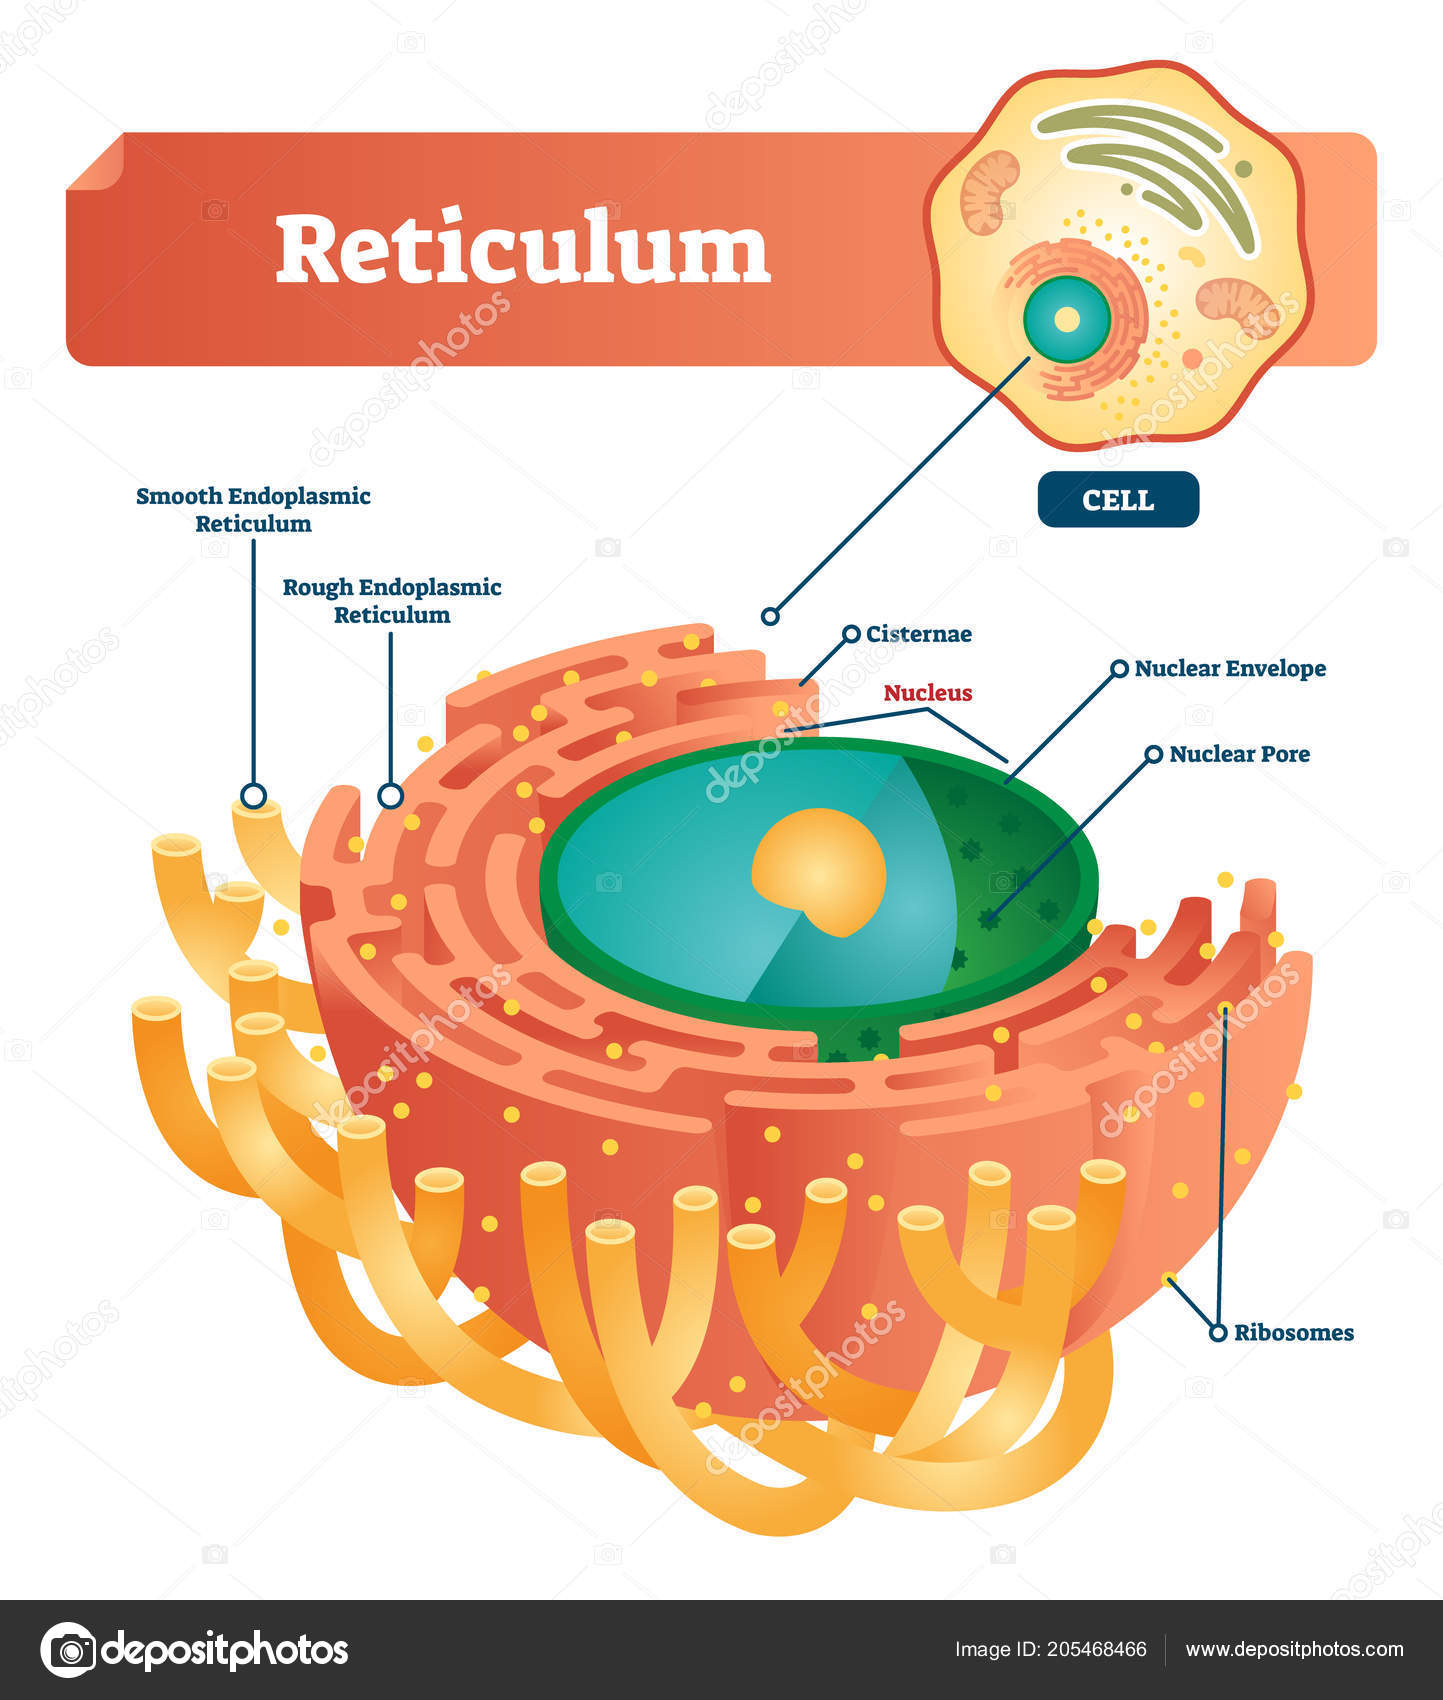 hight resolution of anatomical diagram with smooth and rough endoplasmic reticulum closeup with cisternae nucleus ribosomes nuclear envelope pore and anatomical structure